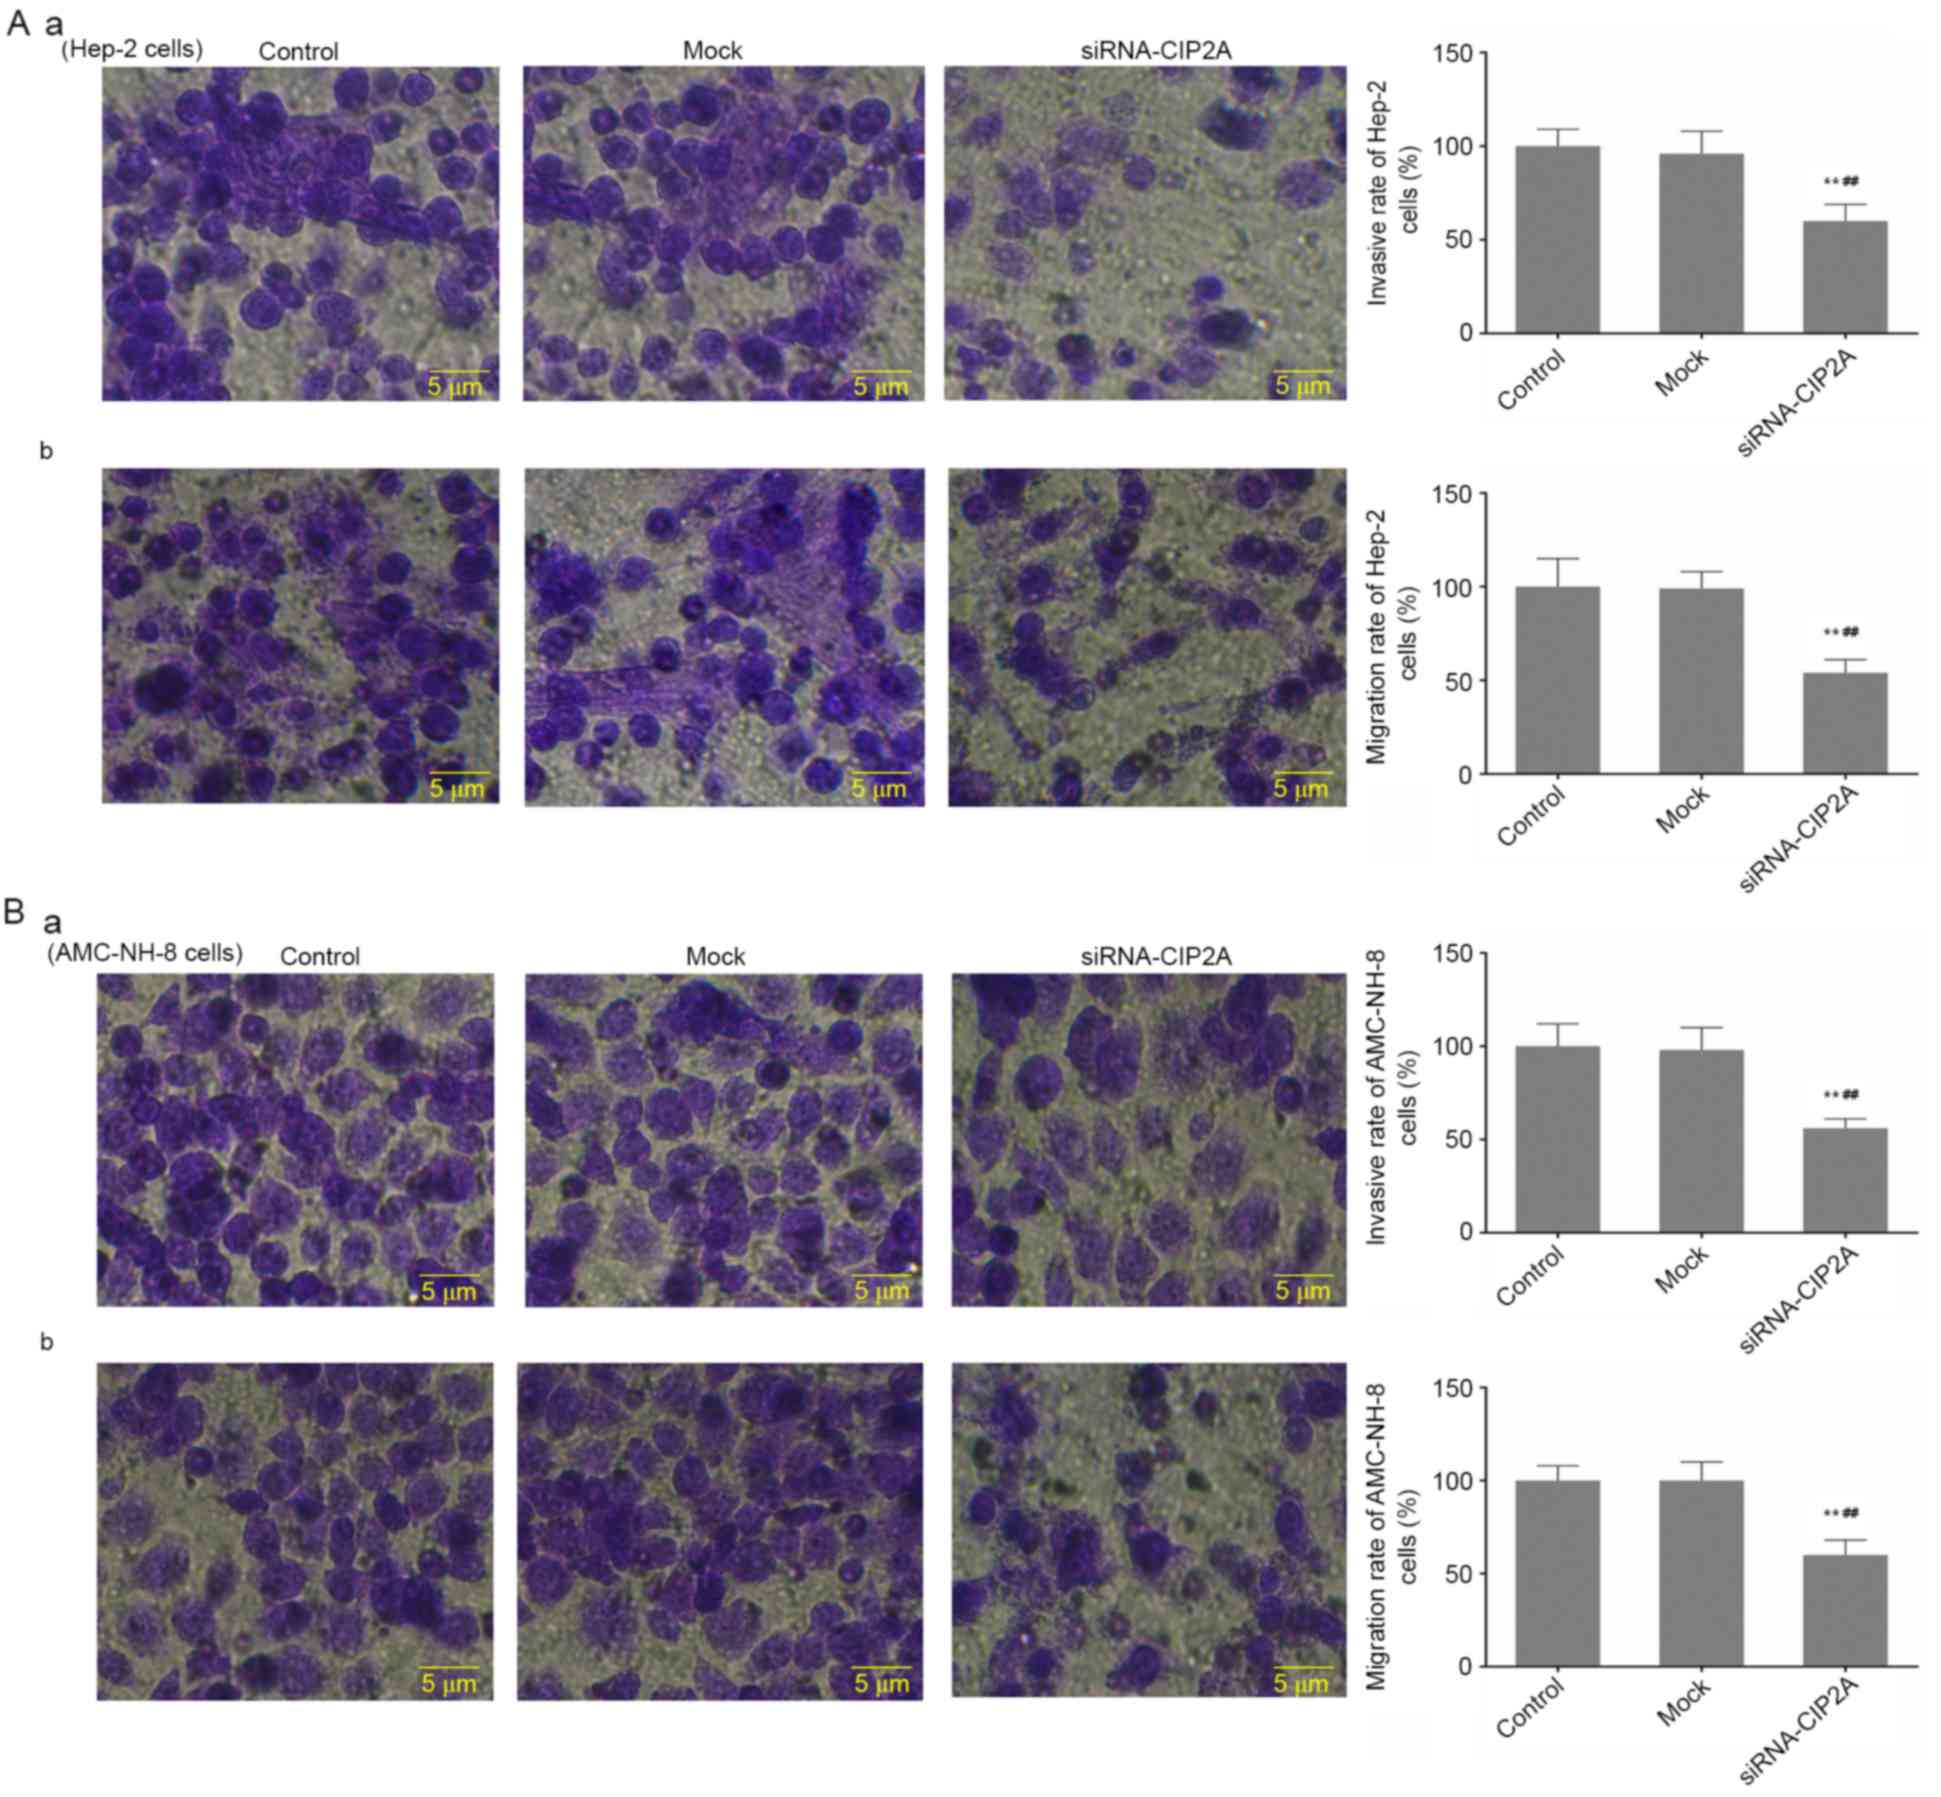 Cip2a An Oncoprotein Is Associated With Cell Proliferation Motion Sensor Switch Ningbo Kingho Imp Exp Coltd Change In The Invasion And Migration On Sirna Transfection Of Hep 2 Cells Amc Nh 8 Aa B Transwell Assay